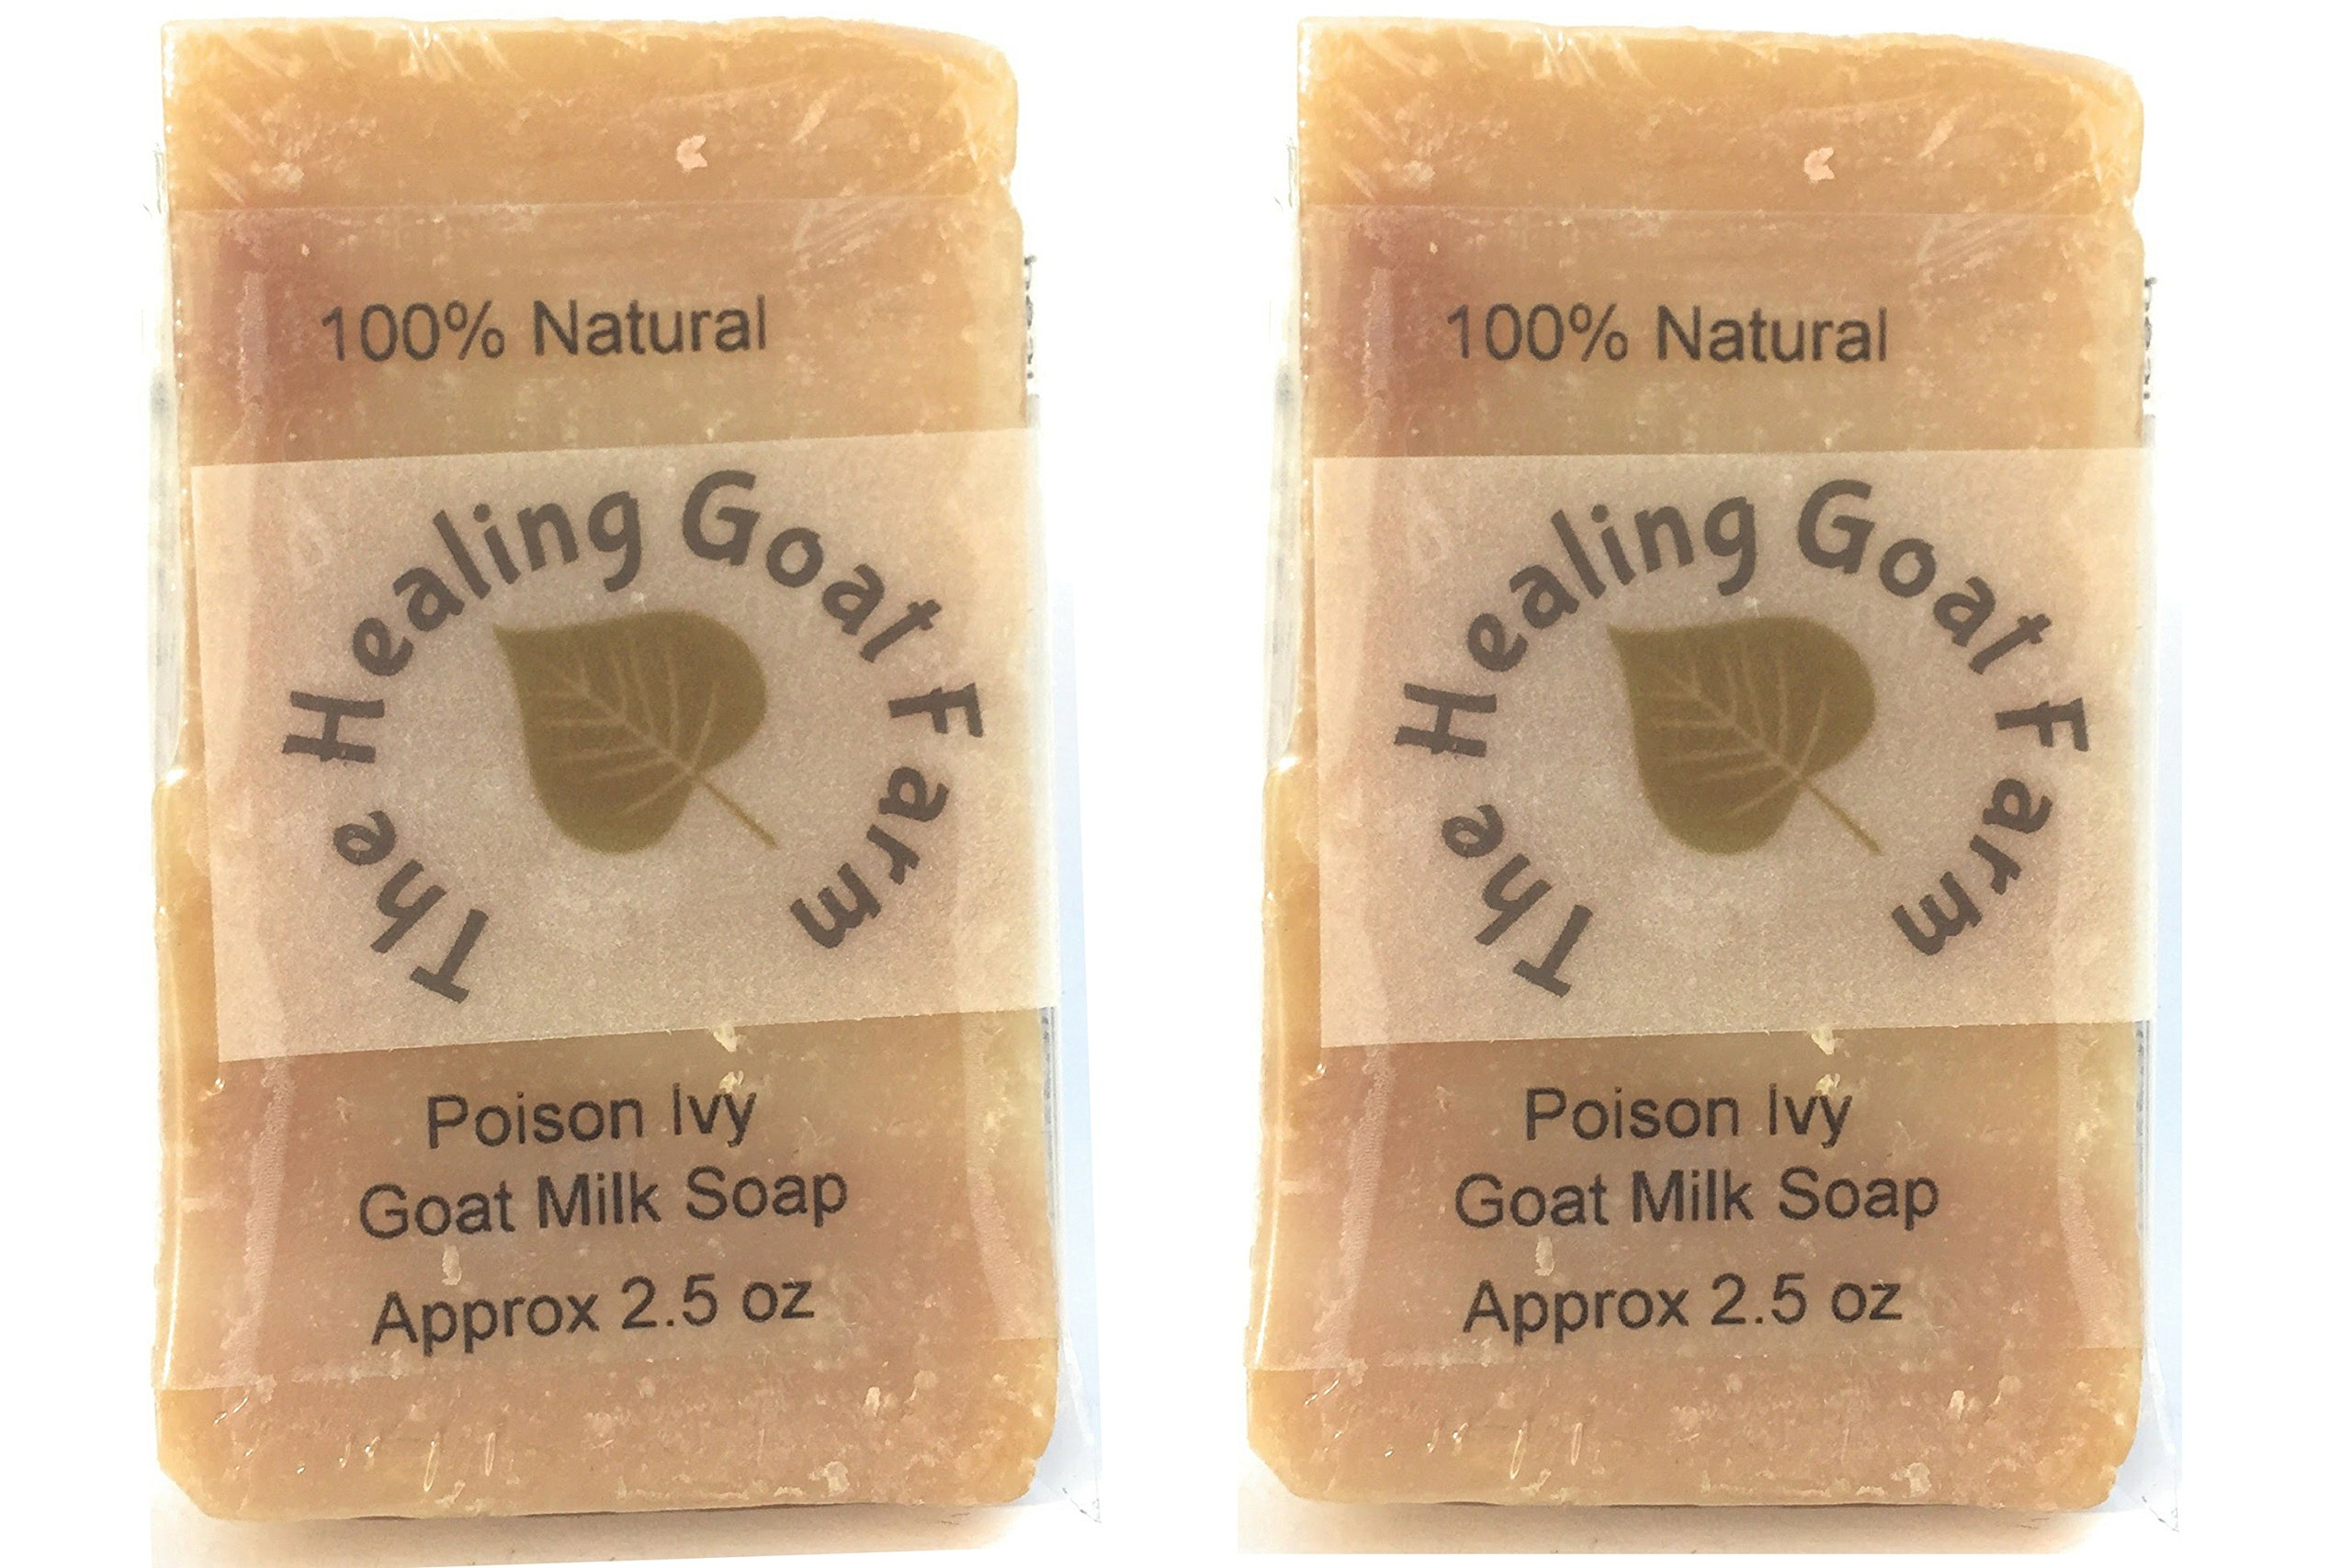 Poison Ivy or Oak Soap Treatment: Itch Relief with Jewelweed, Prevents Spreading, and Moisturizes Your Skin with Goat Milk (2 Half Bars)